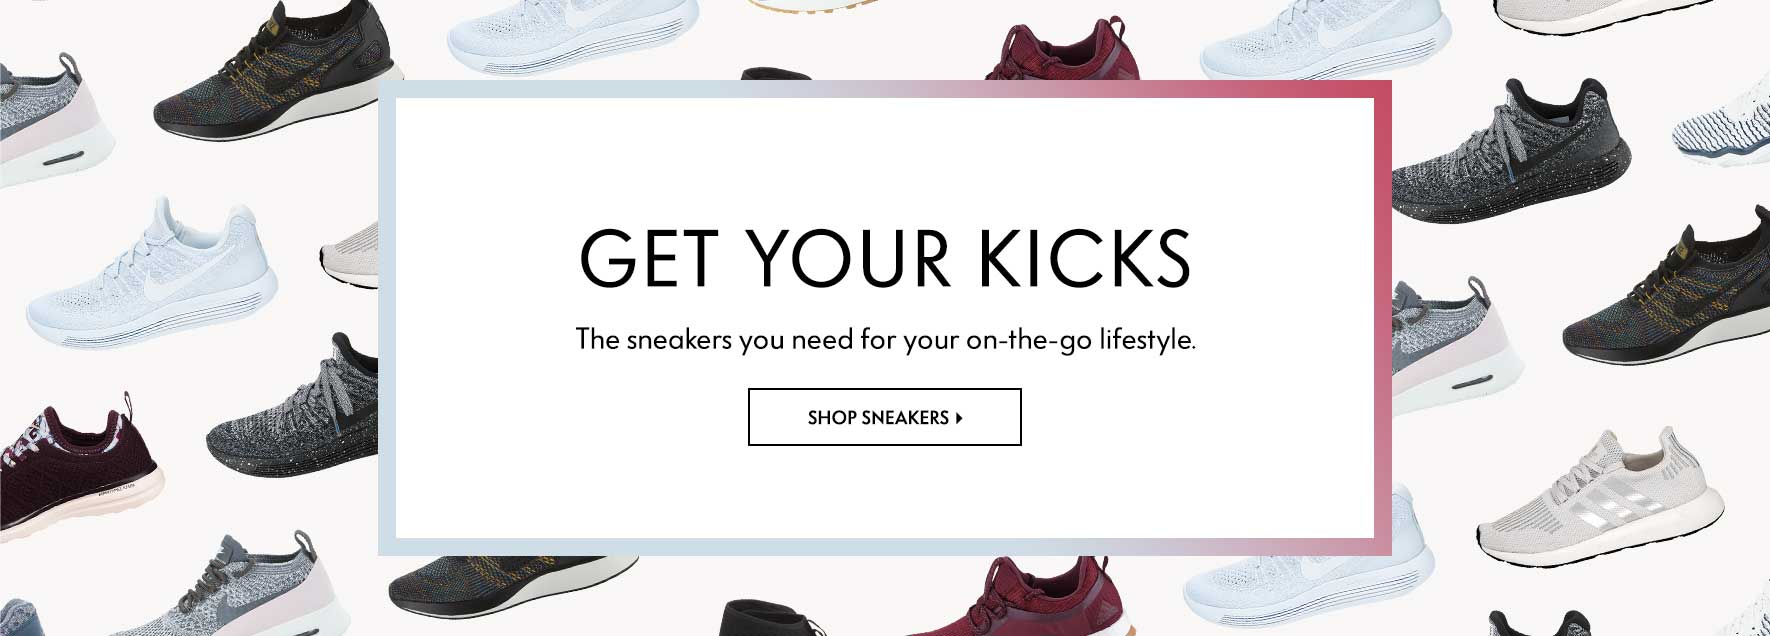 Get Your Kicks - The sneakers you need for your on-the-go lifestyle.